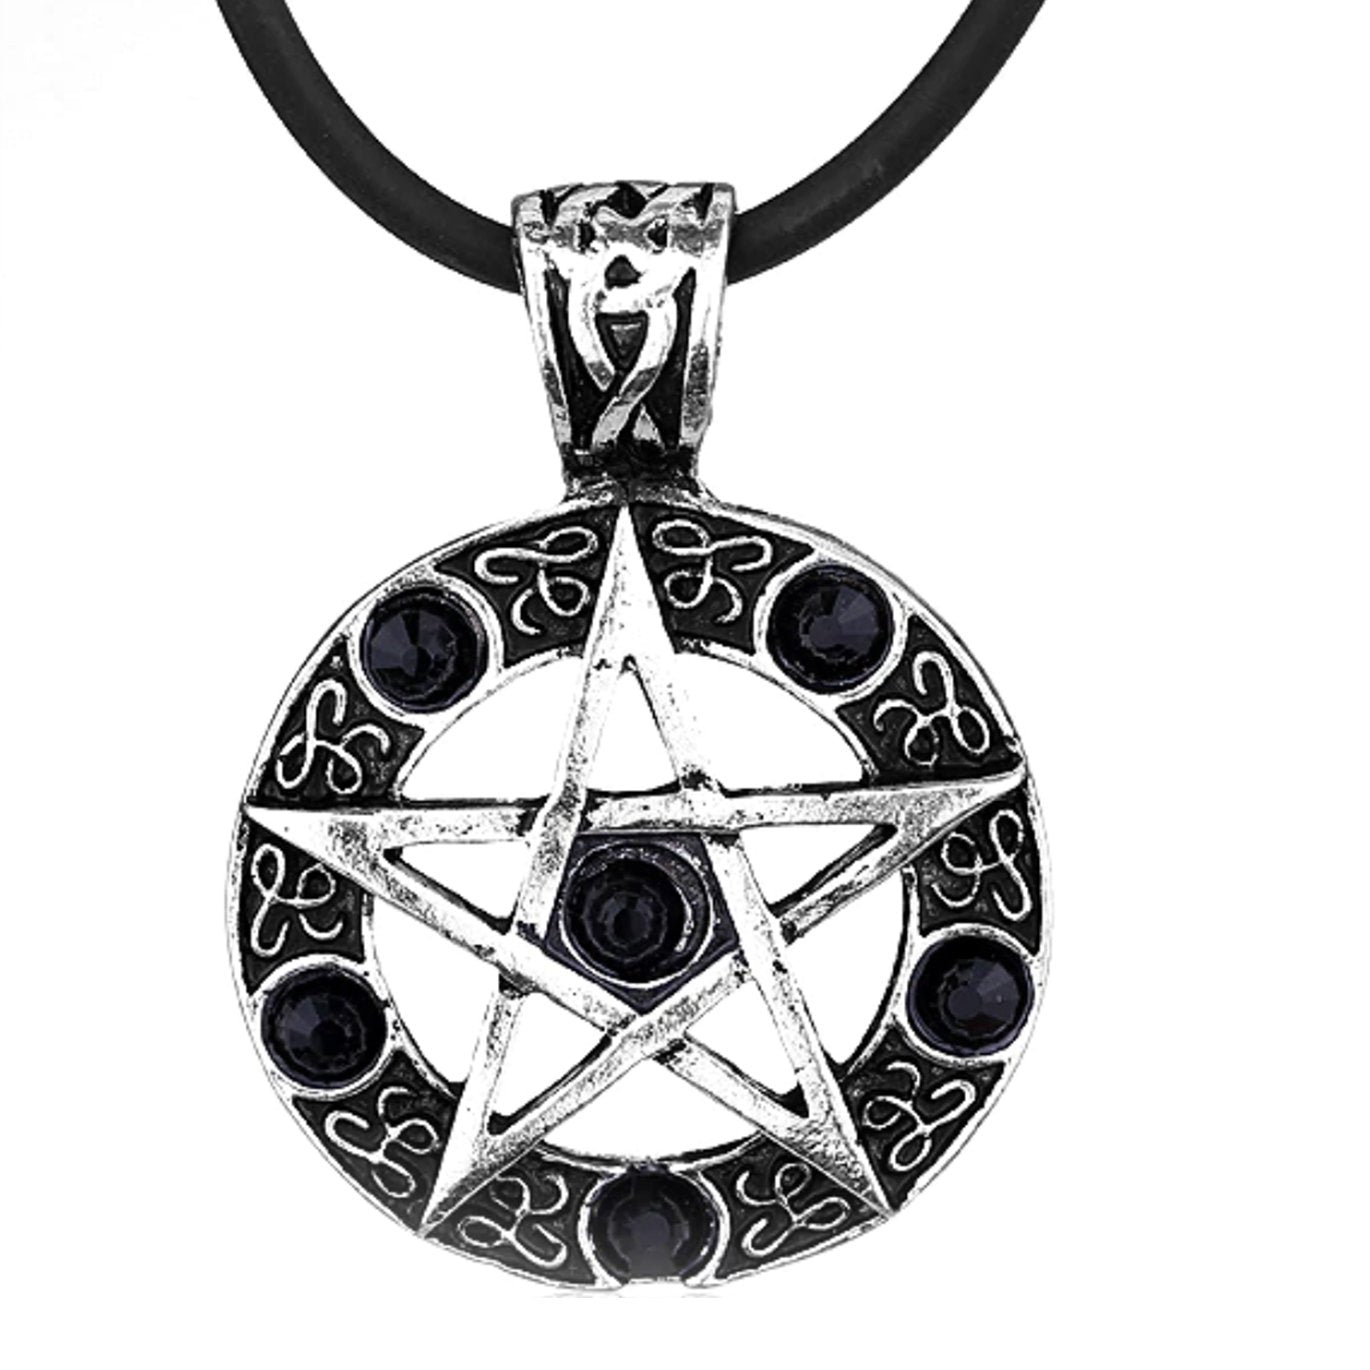 STUDDED PENTACLE NECKLACE